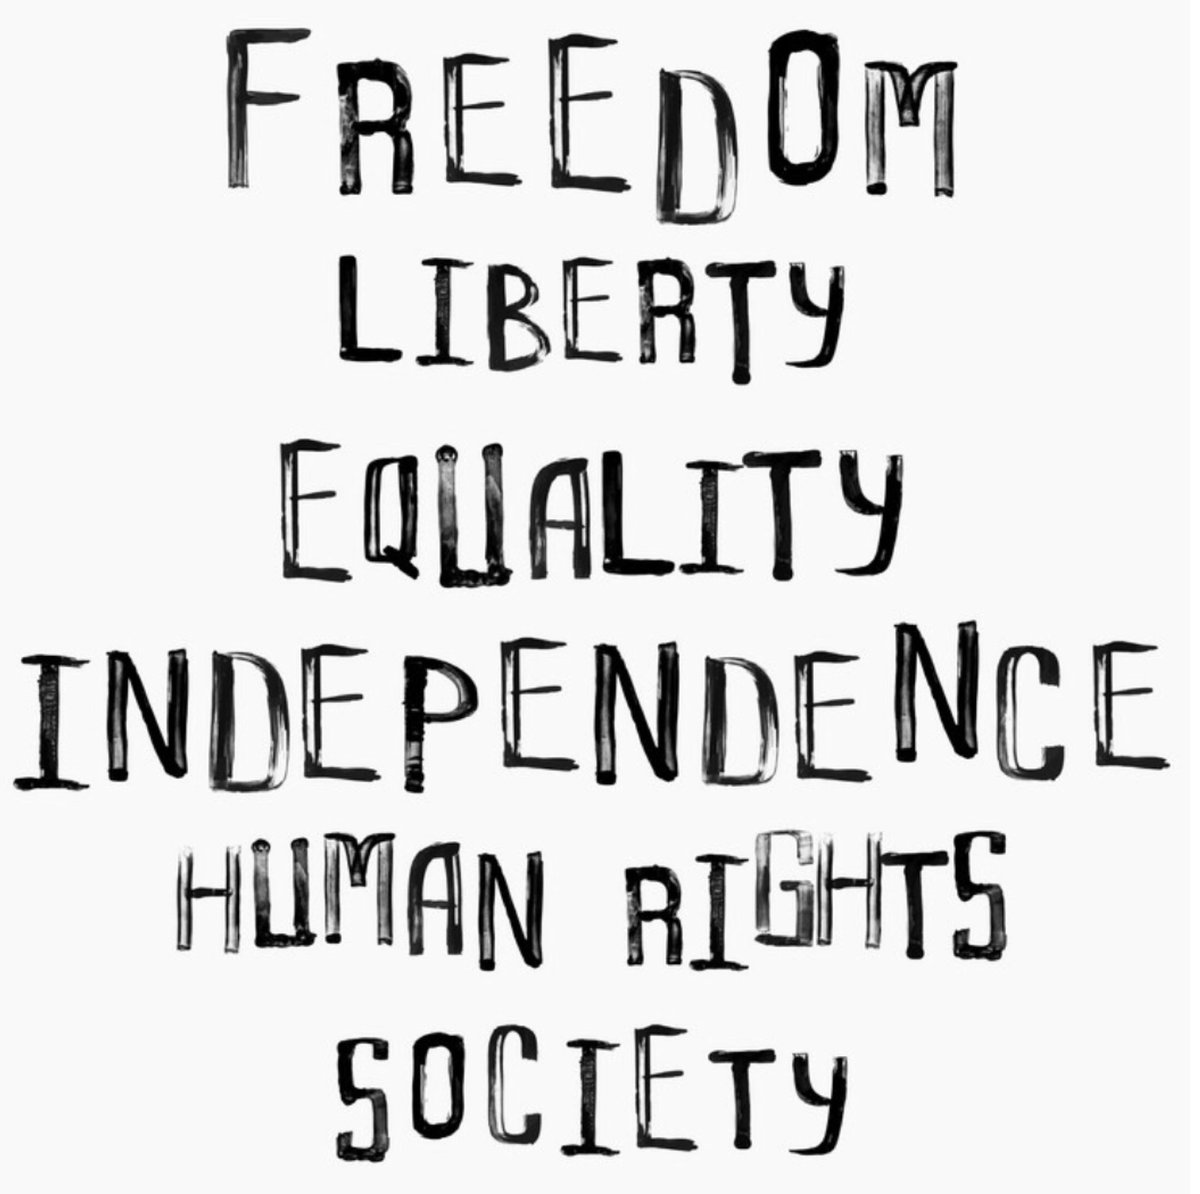 Freedom, Liberty, Equality, Independence, Human Rights and Society. Let's reflect on these words as we celebrate independence and continue to fight for freedom for every American. Happy Independence and freedom day everyone!